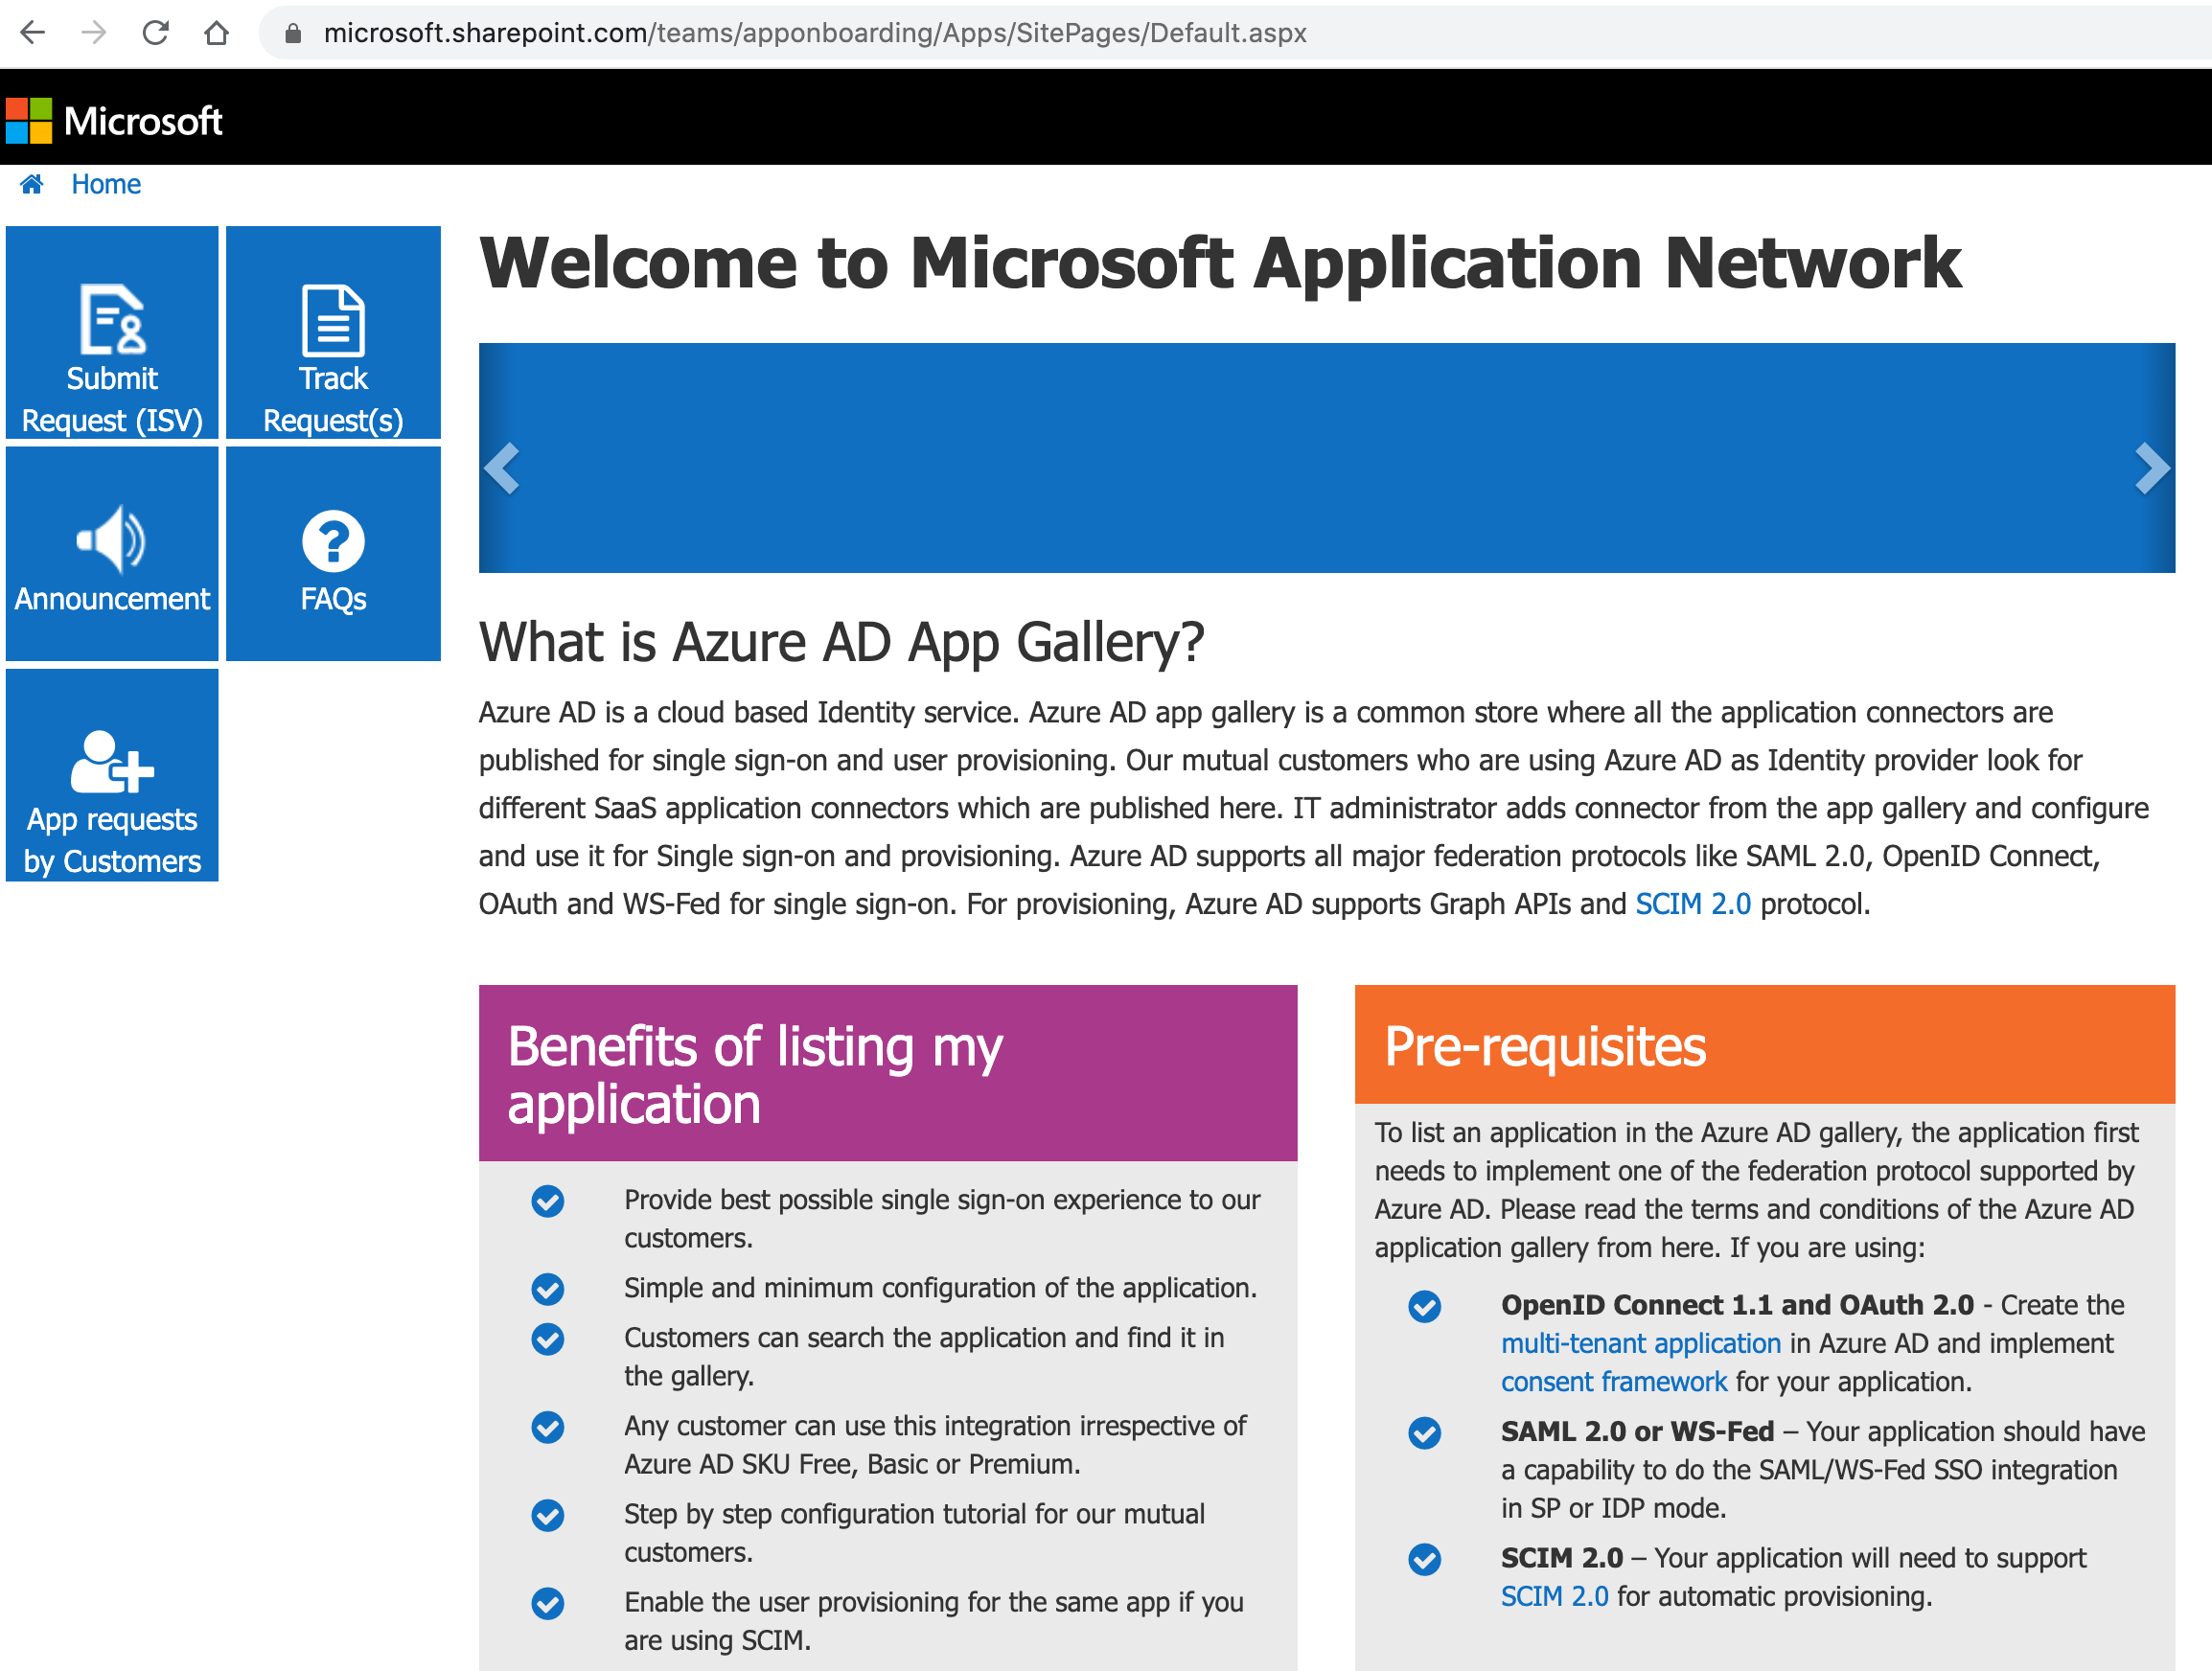 Microsoft Application Network